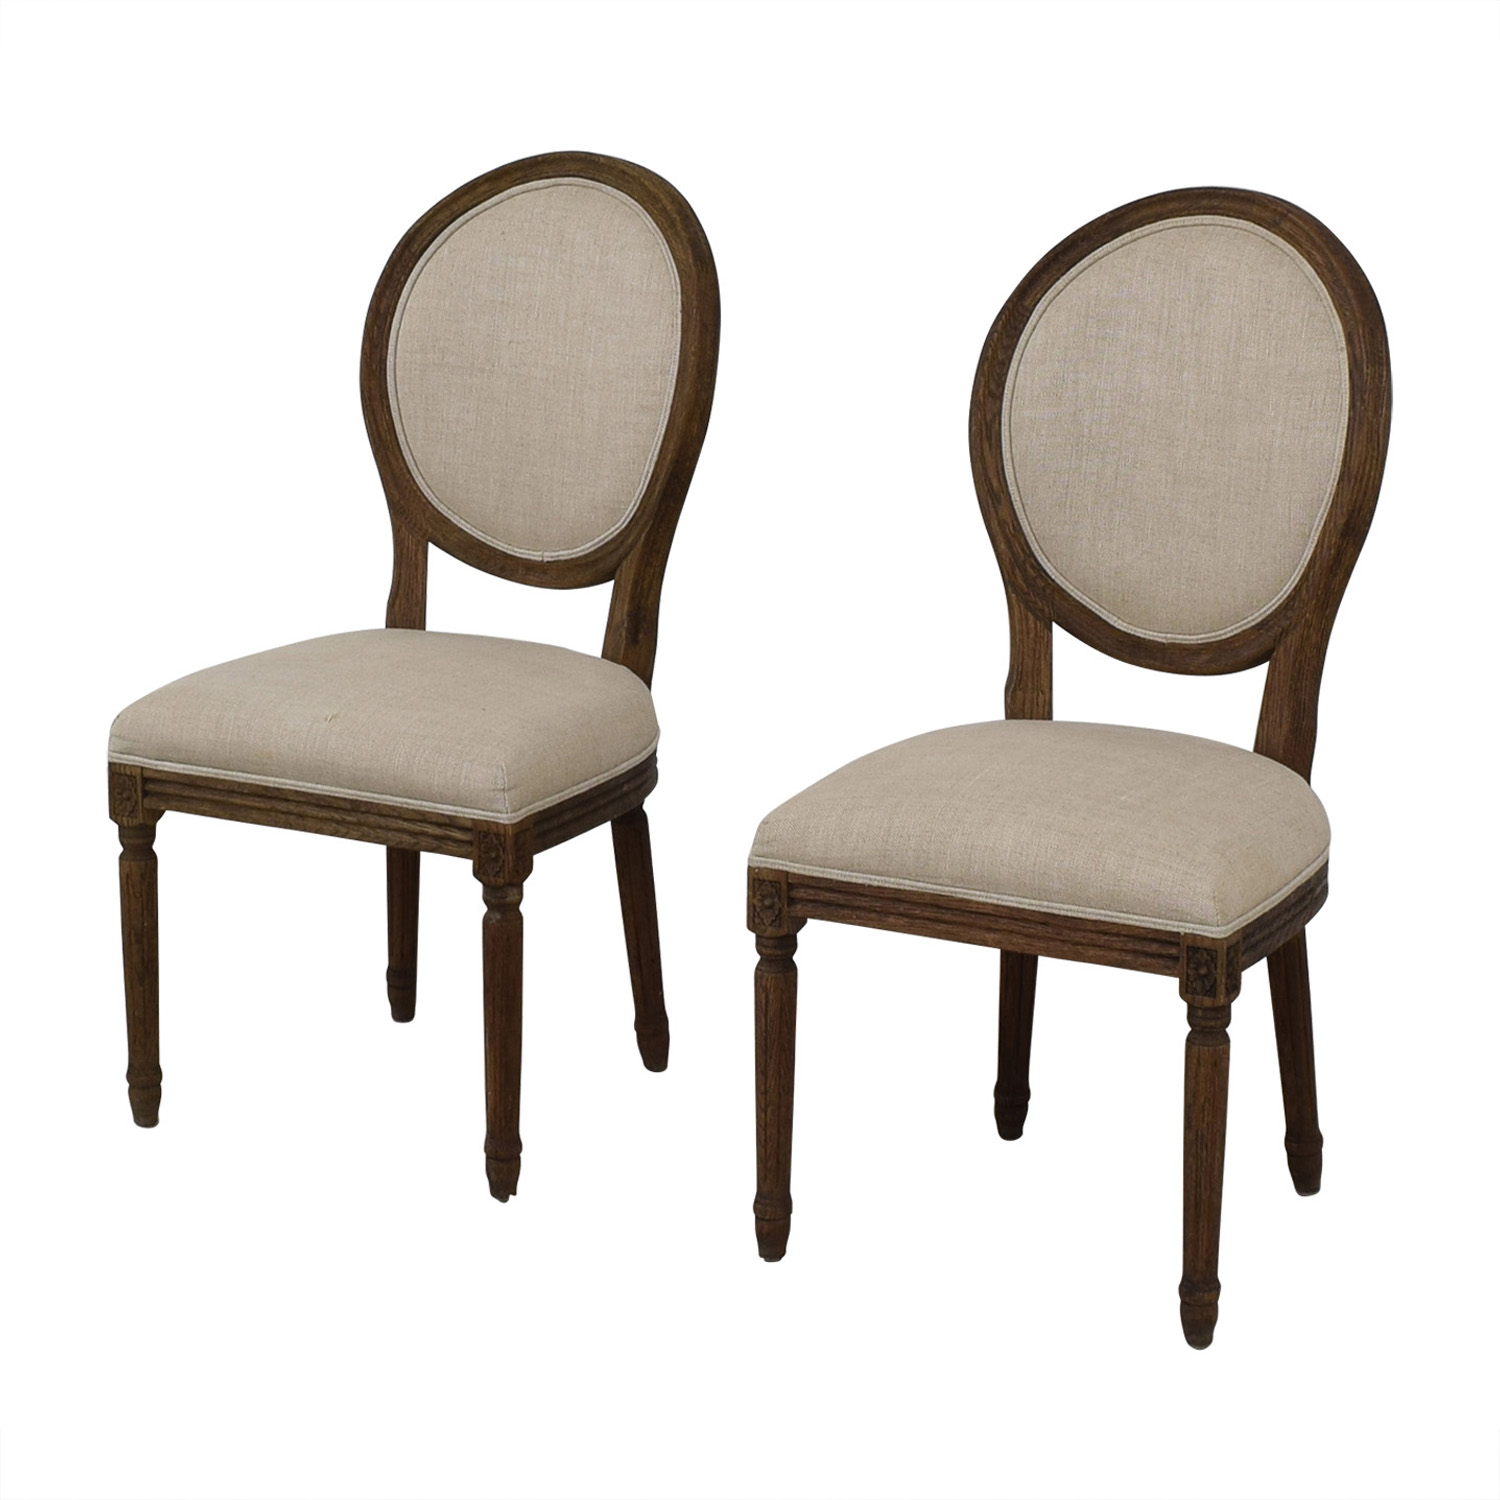 Restoration Hardware Restoration Hardware Vintage French Grey Upholstered Chairs on sale